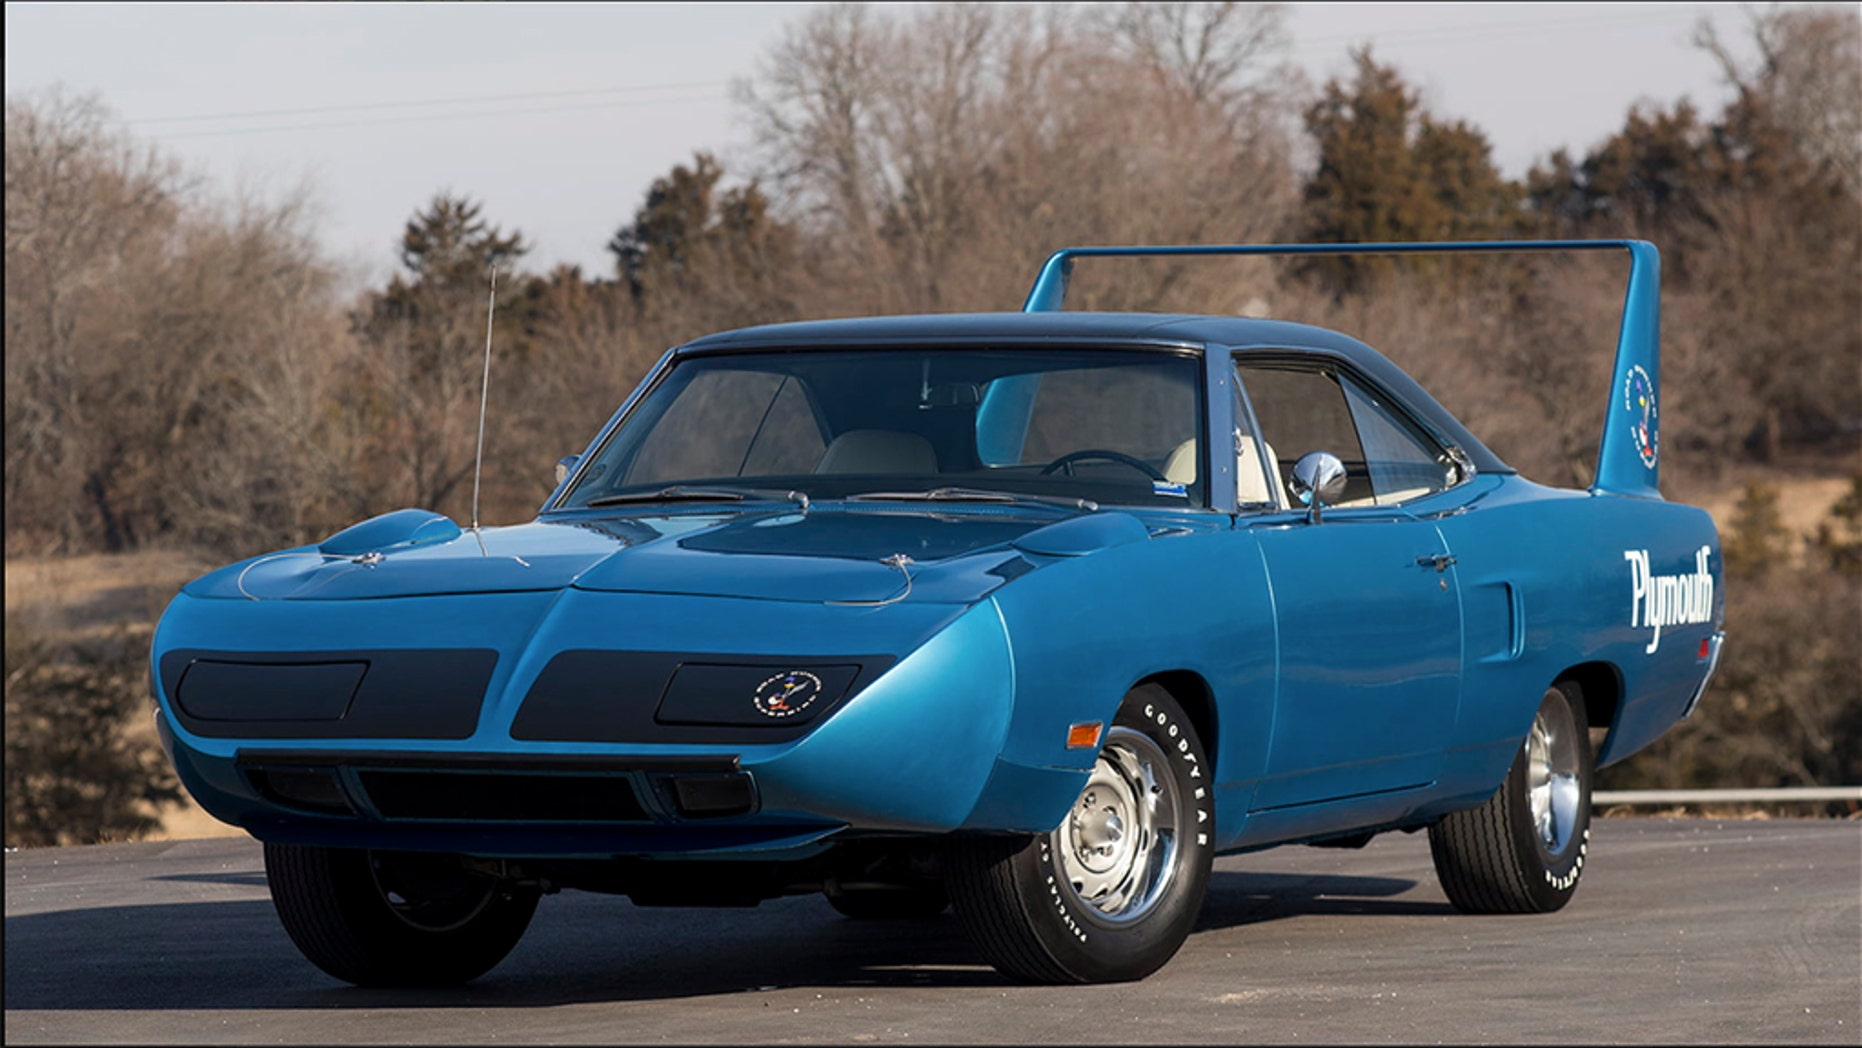 1970 Plymouth Superbird headed to Houston auction | Fox News